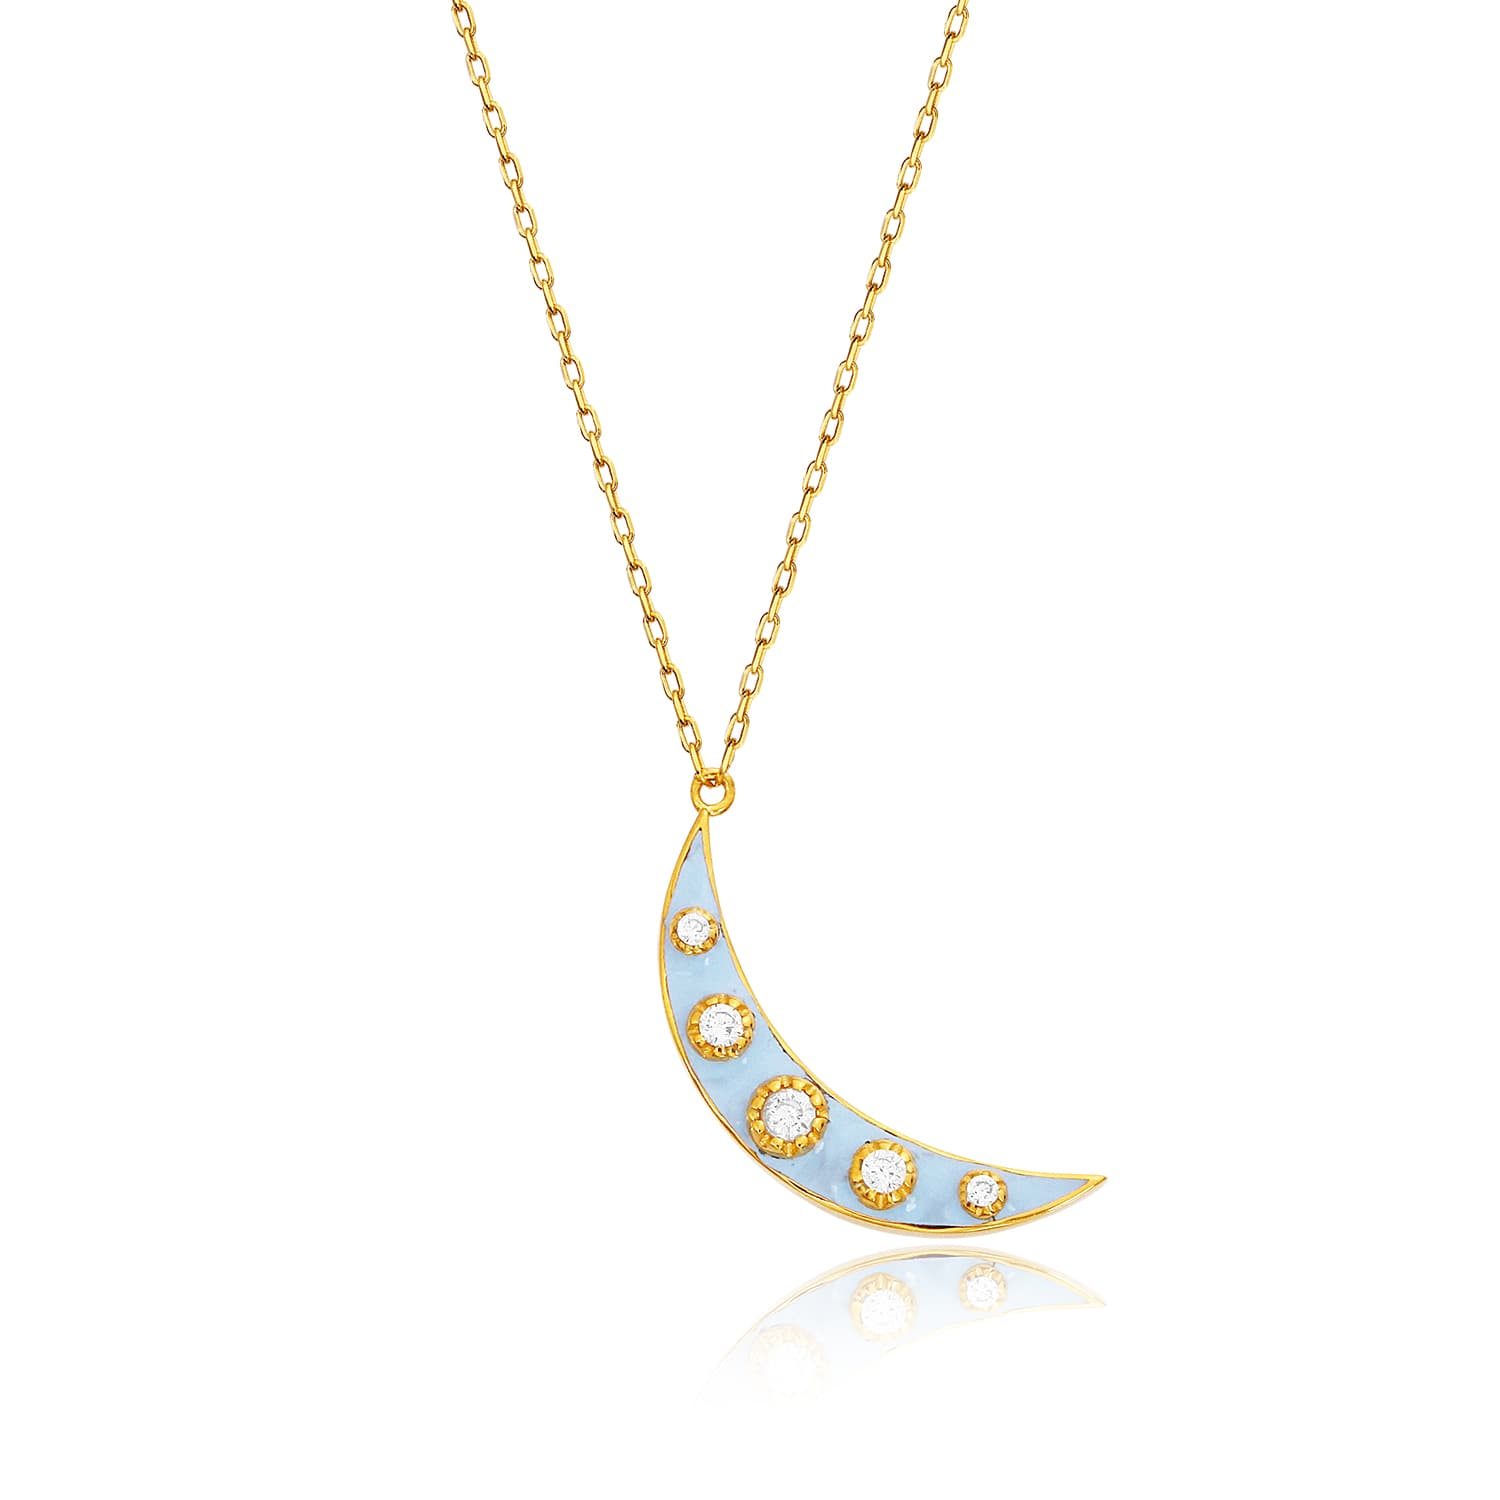 Real gold plated enamel necklace models in silver